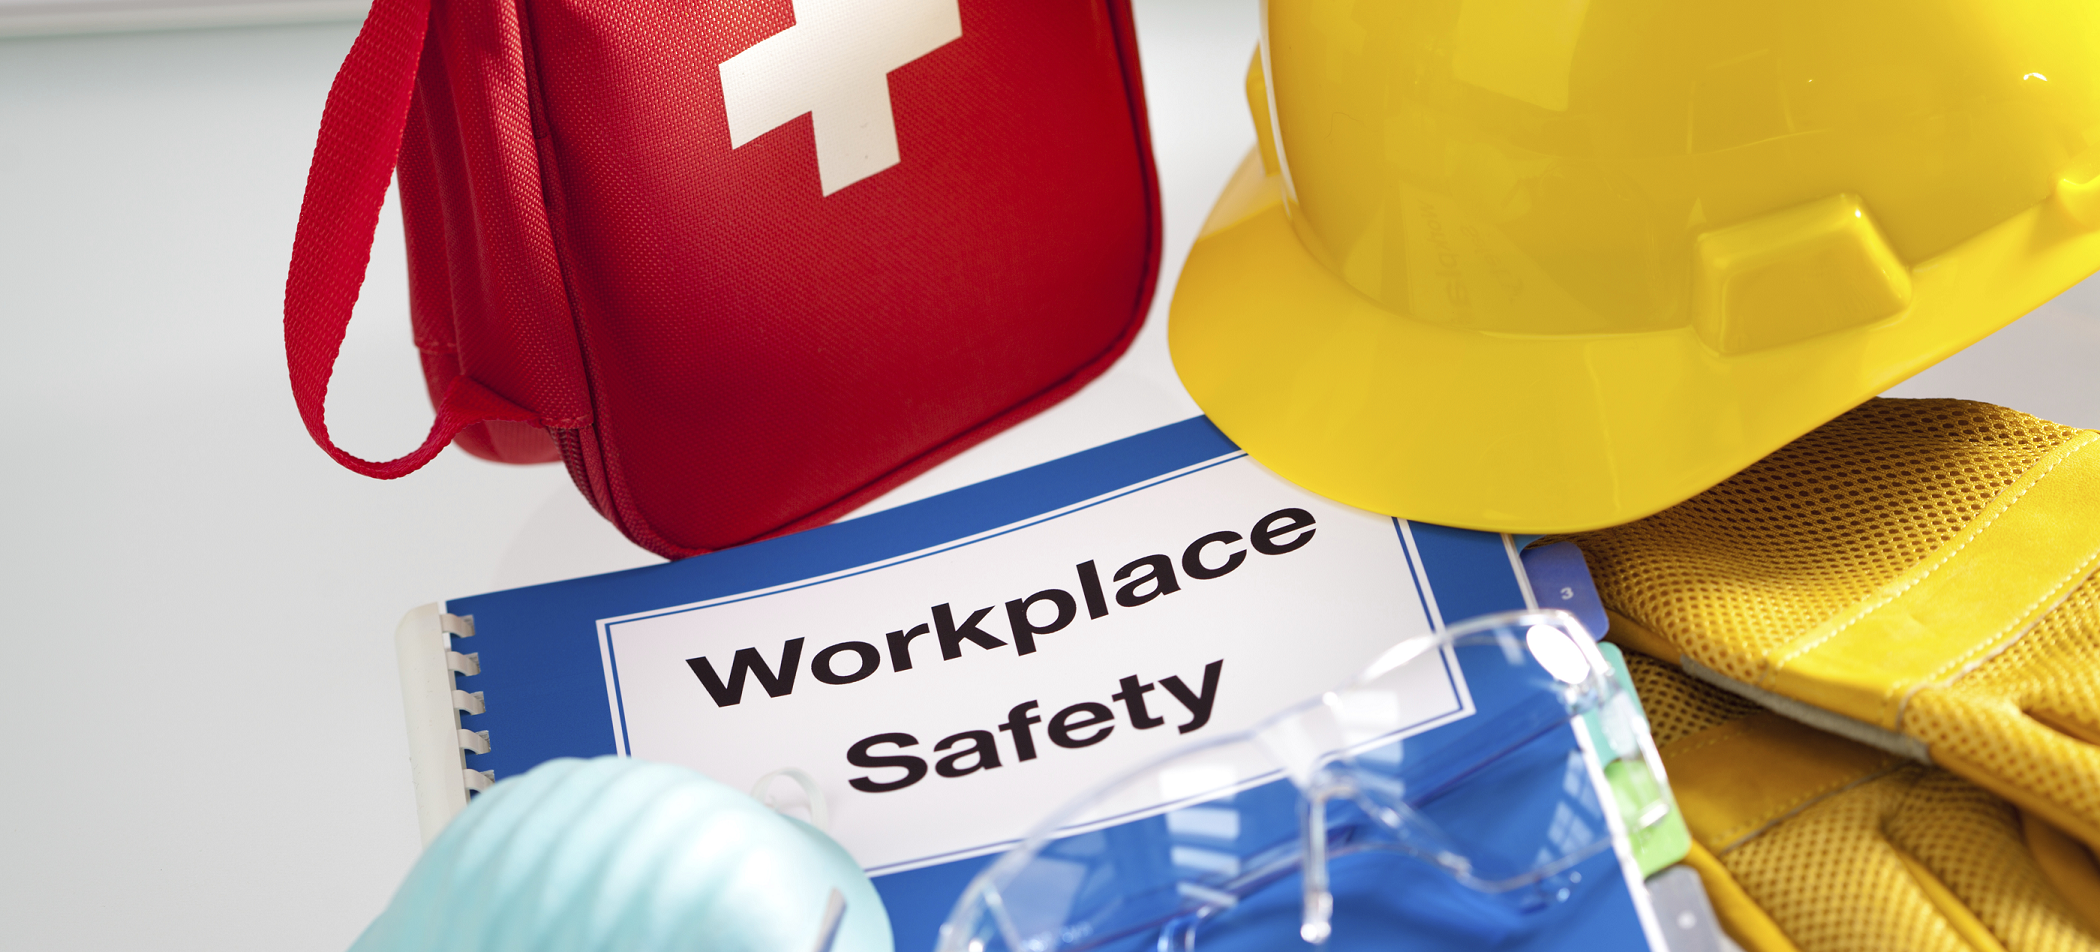 Workplace safety booklet, first aid kit, hard hat, gloves and mask - safety solutions